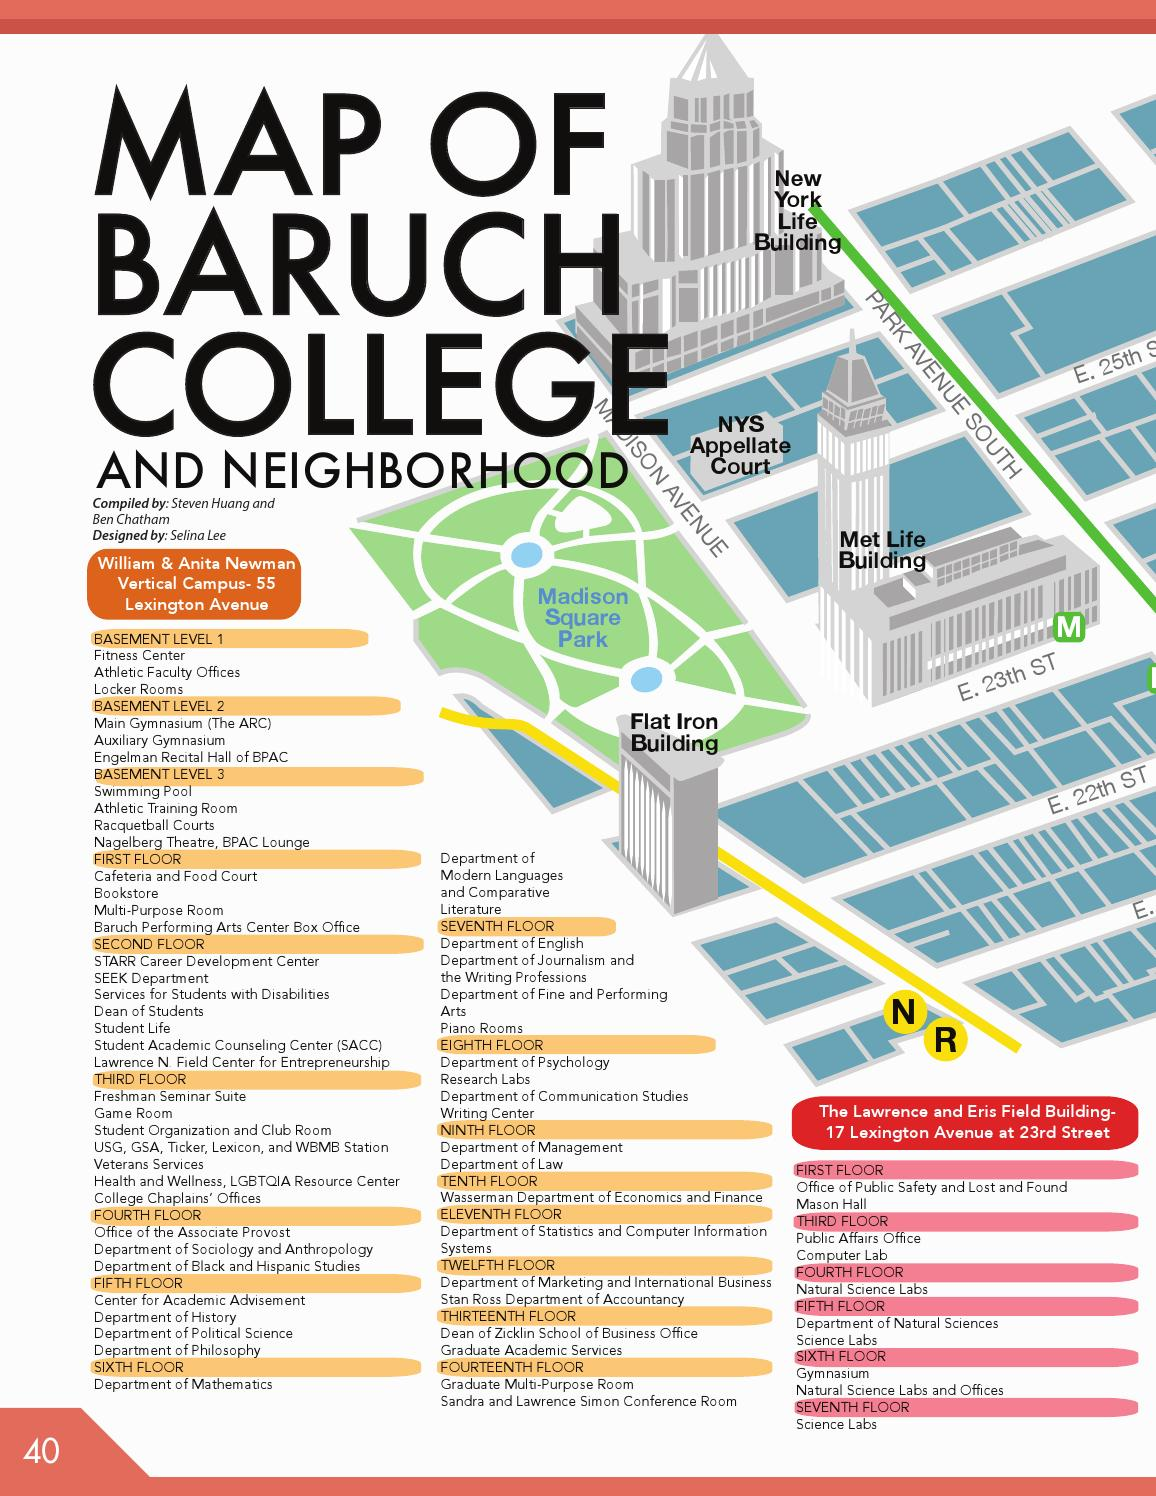 baruch college campus map Baruch Undergrad Student Survival Guide 15 16 By Usg Baruch Issuu baruch college campus map